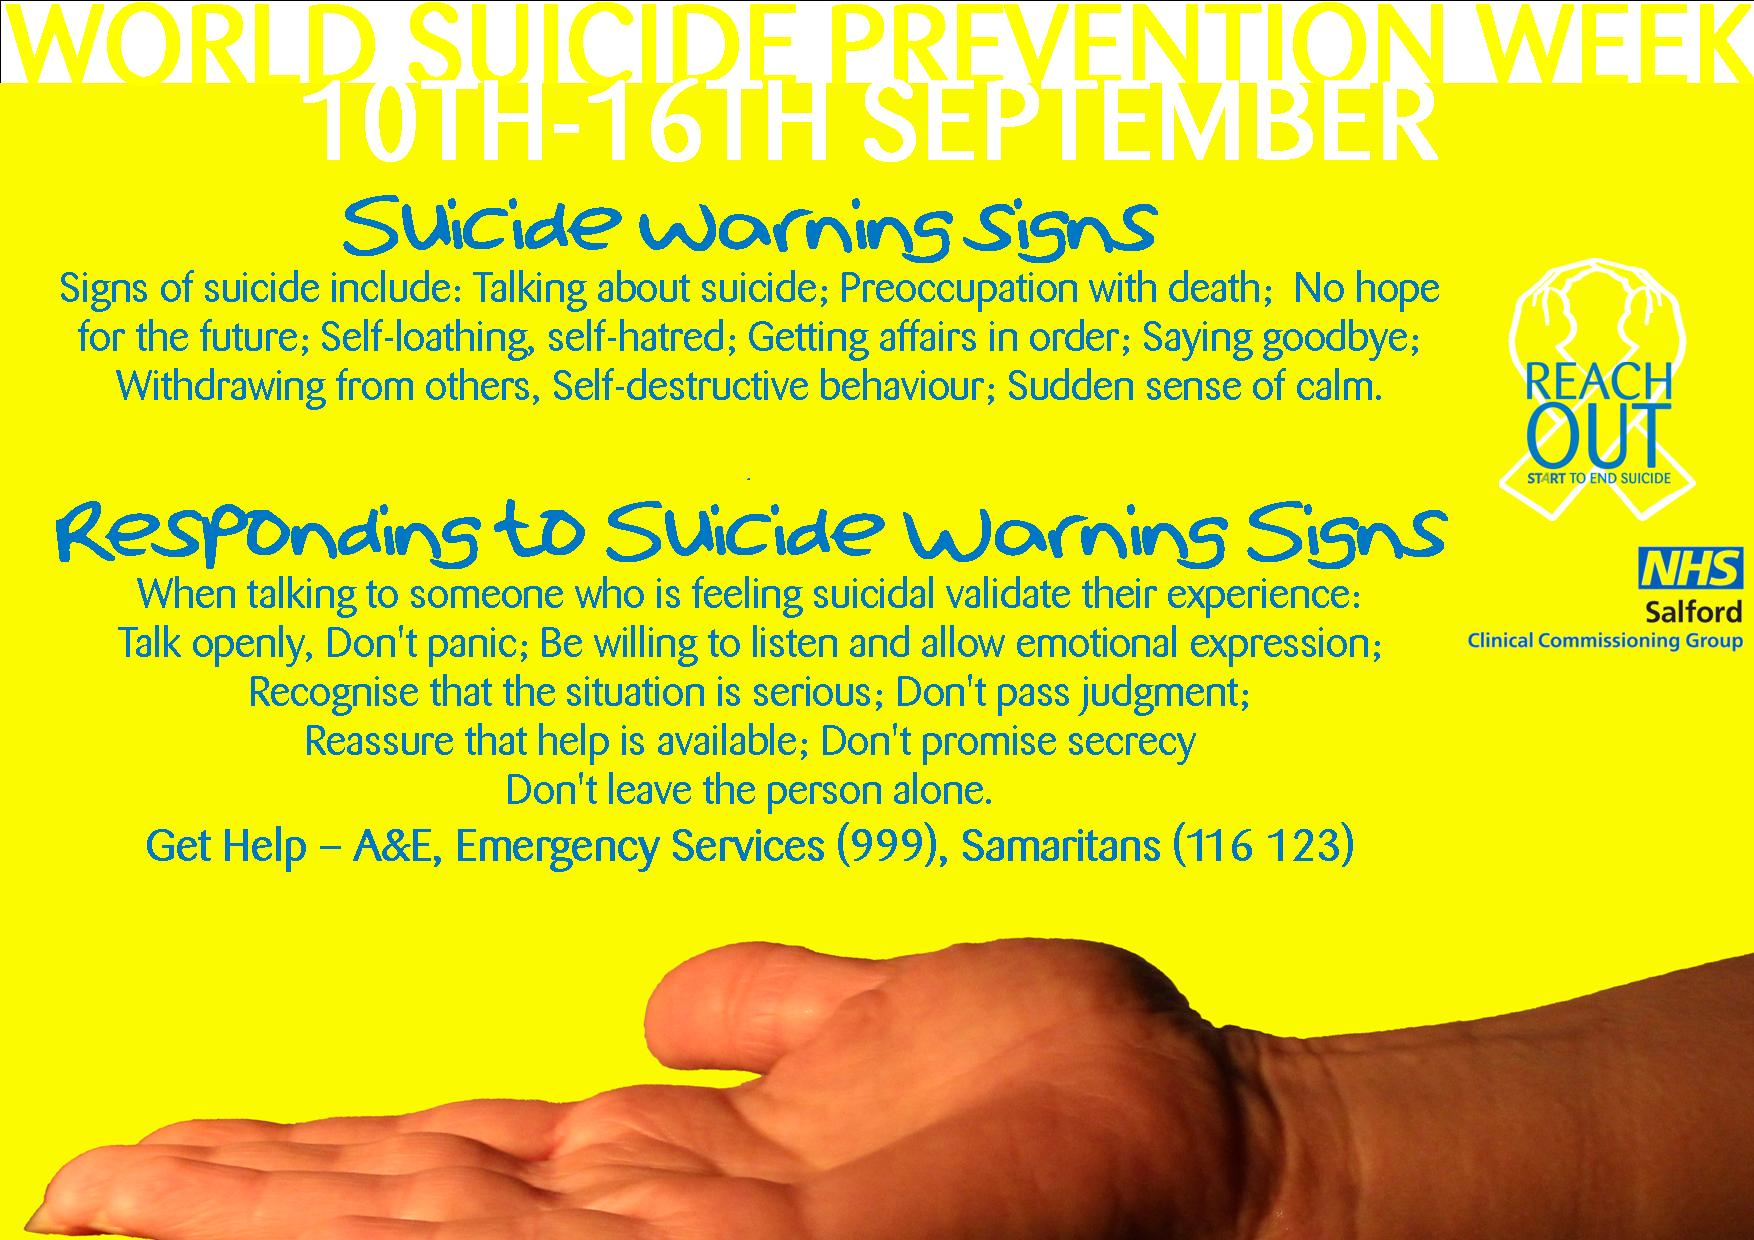 START & Salford CCG Suicide Prevention Poster for those worried about a loved one.jpg